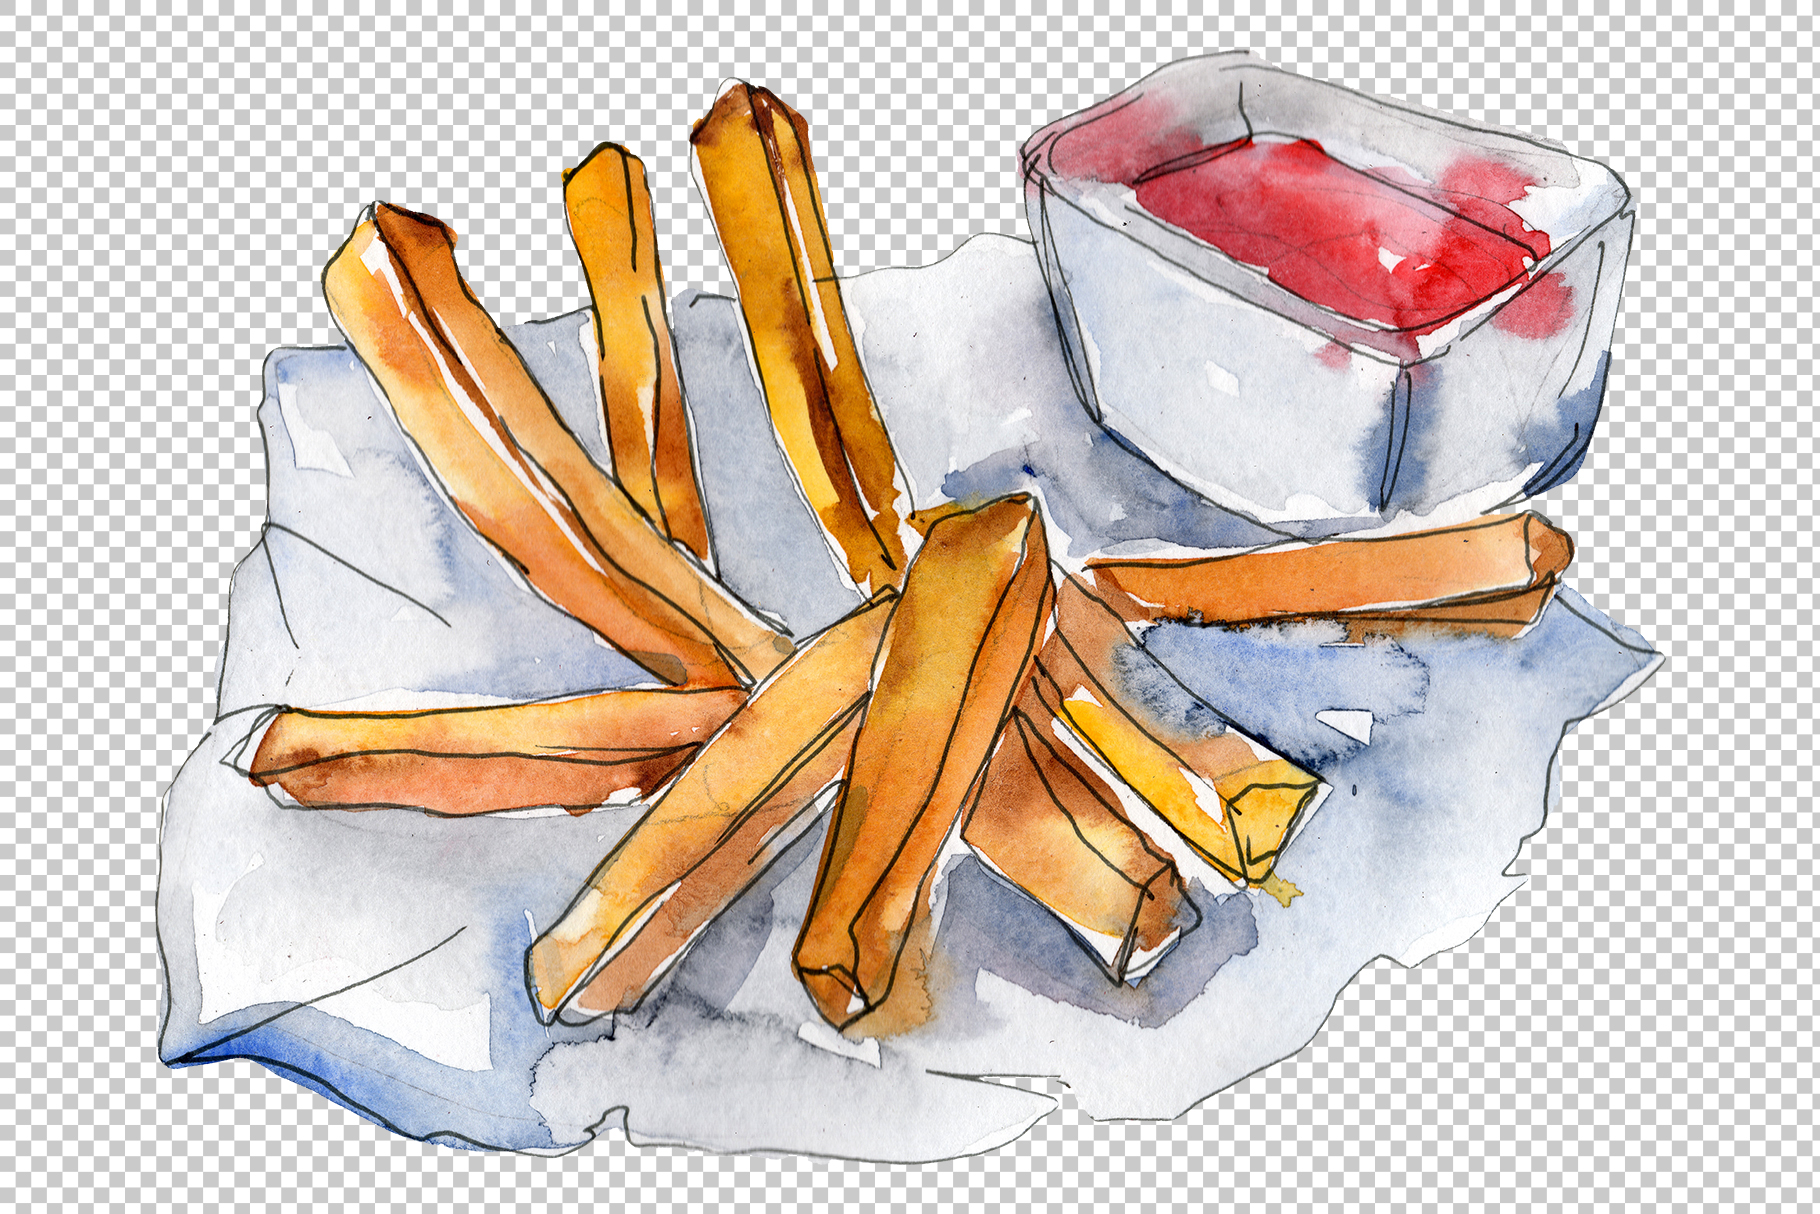 French fries with sauce Watercolor png example image 6